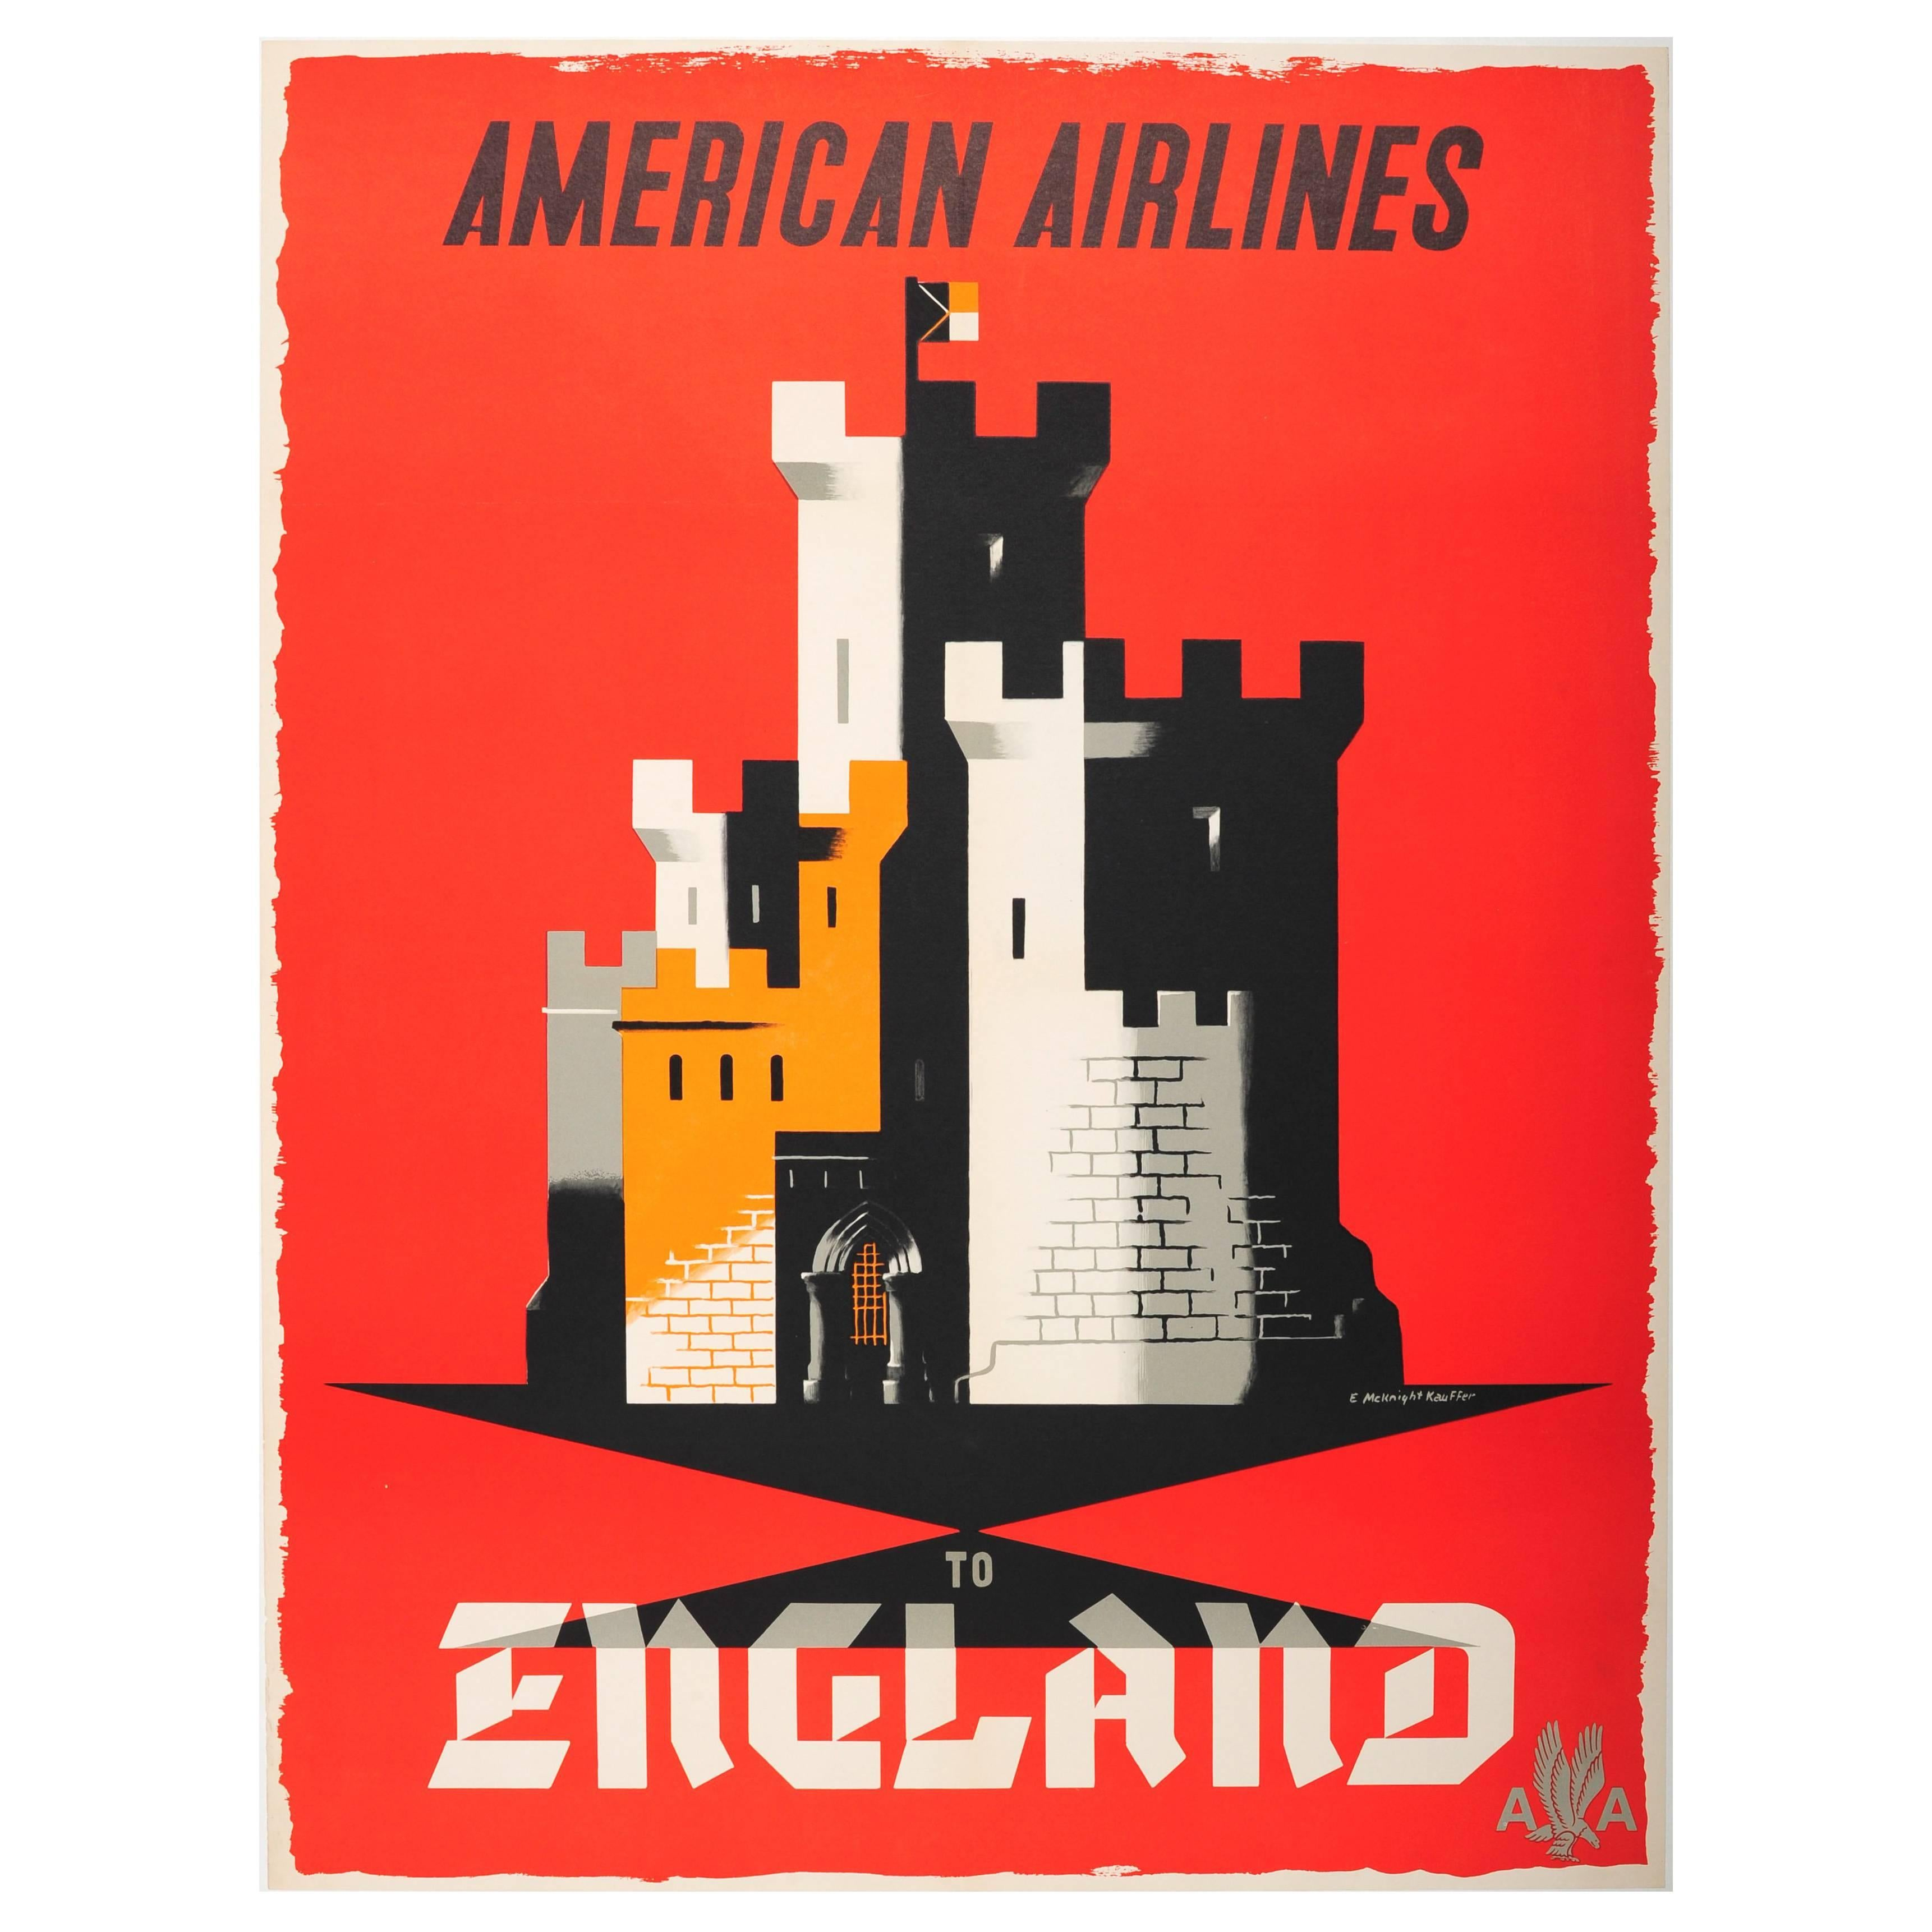 Original Vintage Travel Poster by McKnight Kauffer: American Airlines to England